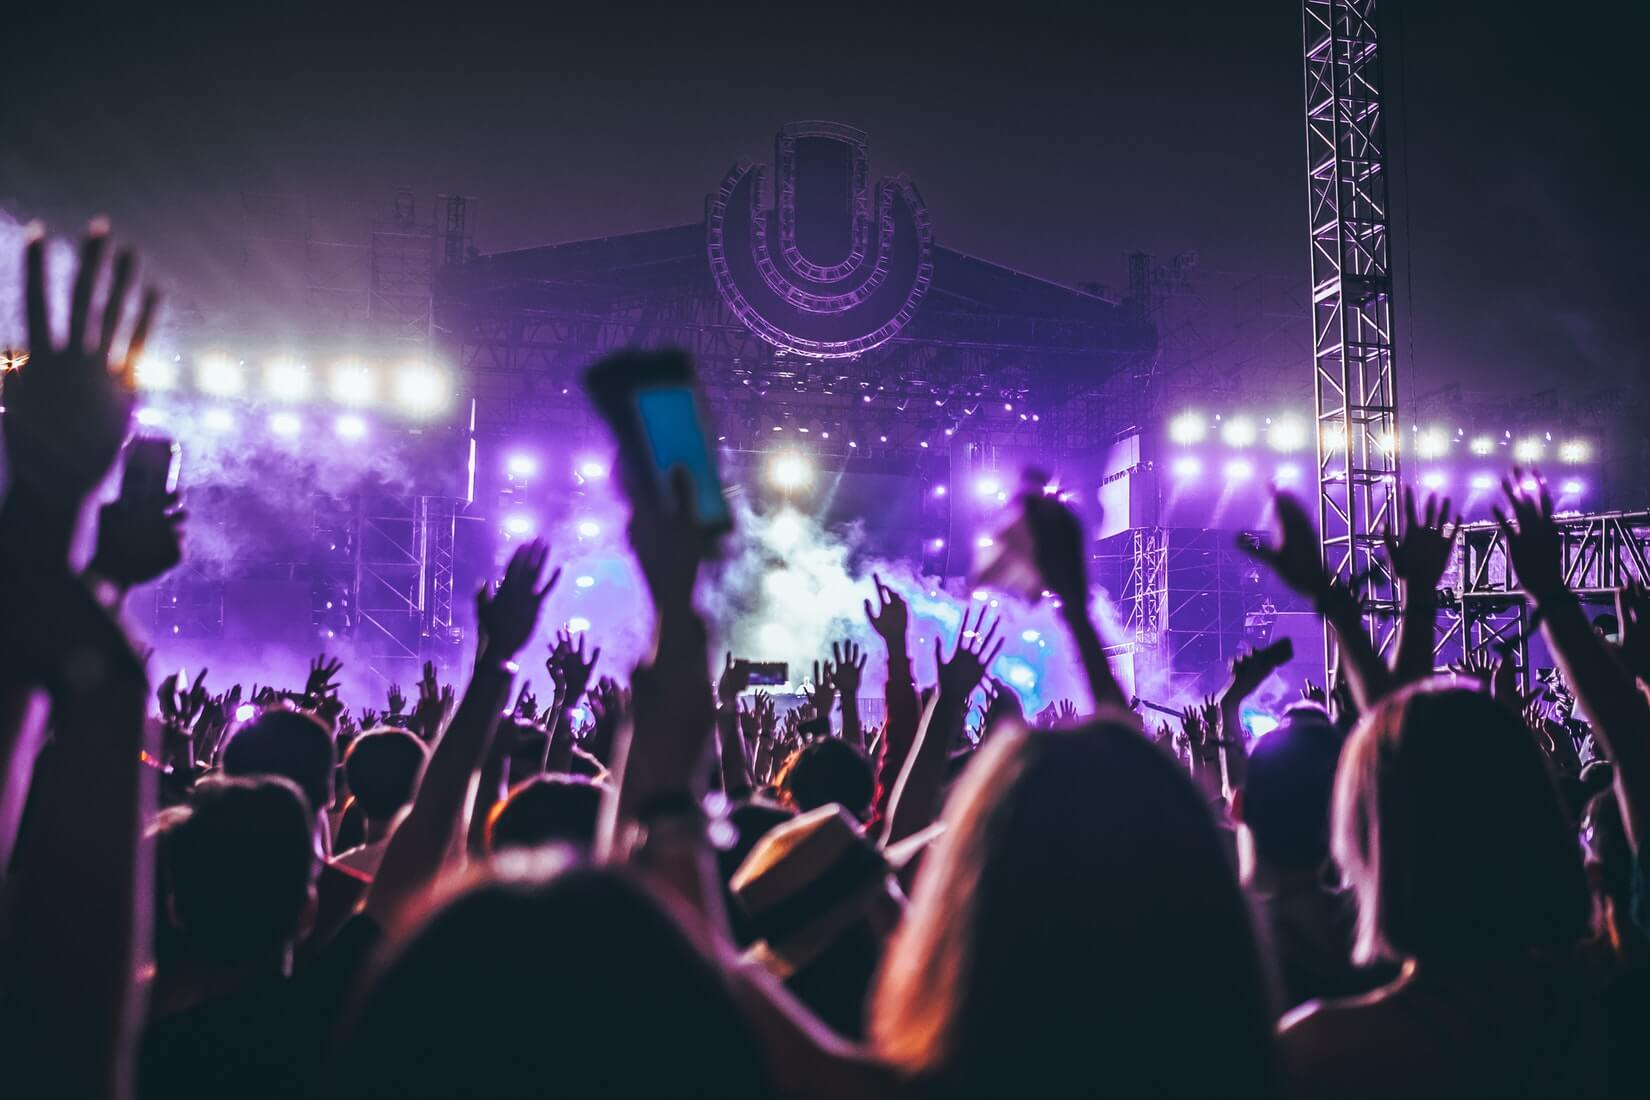 Why play at a music festival and how do you stand out? - Part 2